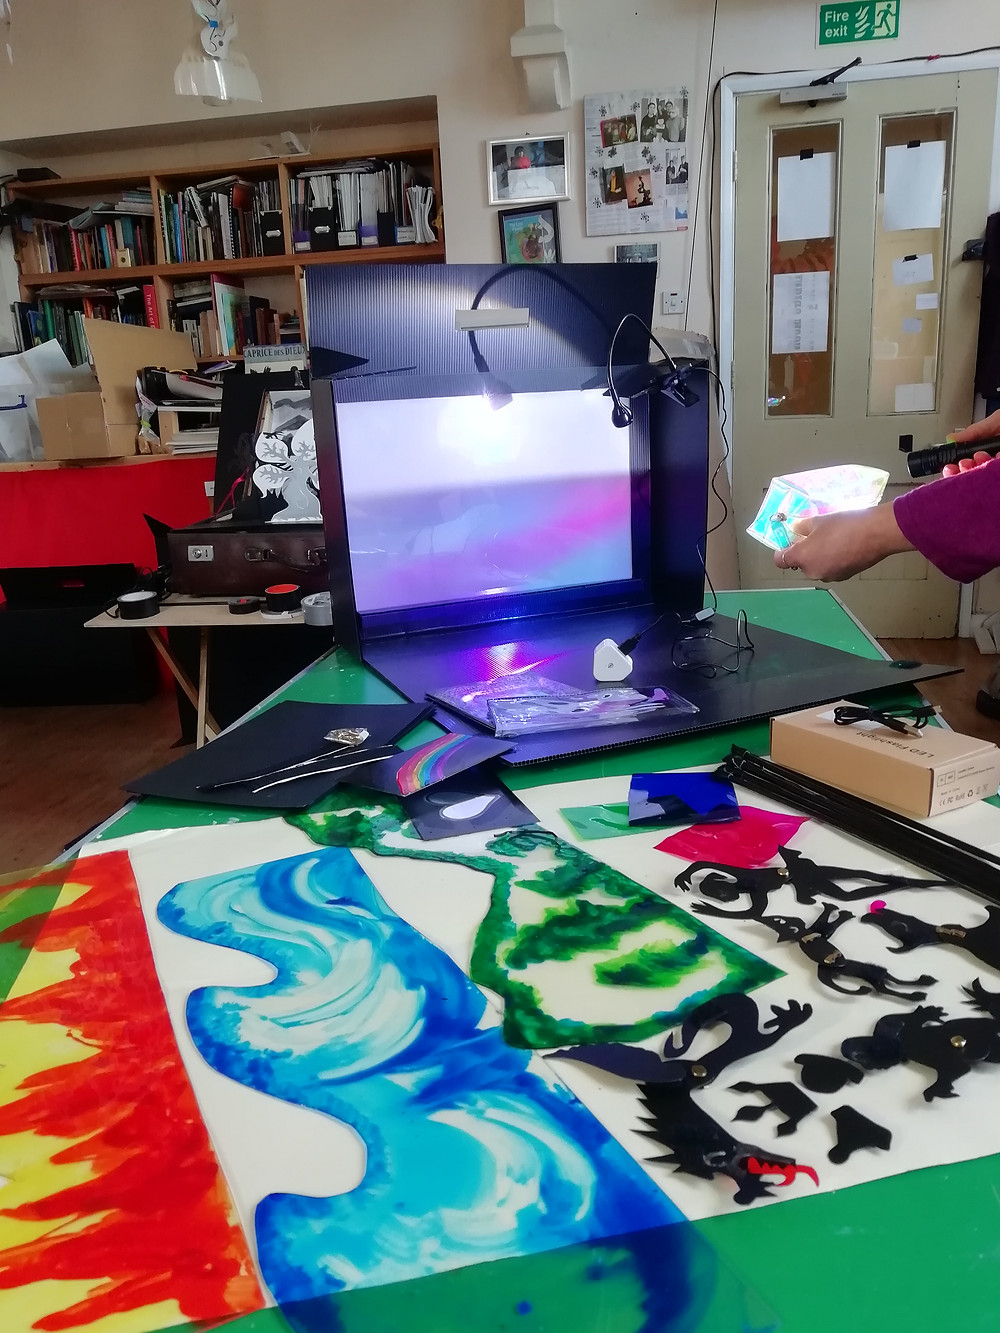 The shadow puppet kit with all of the contents is laid out on a green table. The shadow screen box with a light has puppets and coloured backgrounds placed in front of it ready for use. A puppeteer holds one of the backgrounds in front of the light source to demonstrate the effect on the screen.